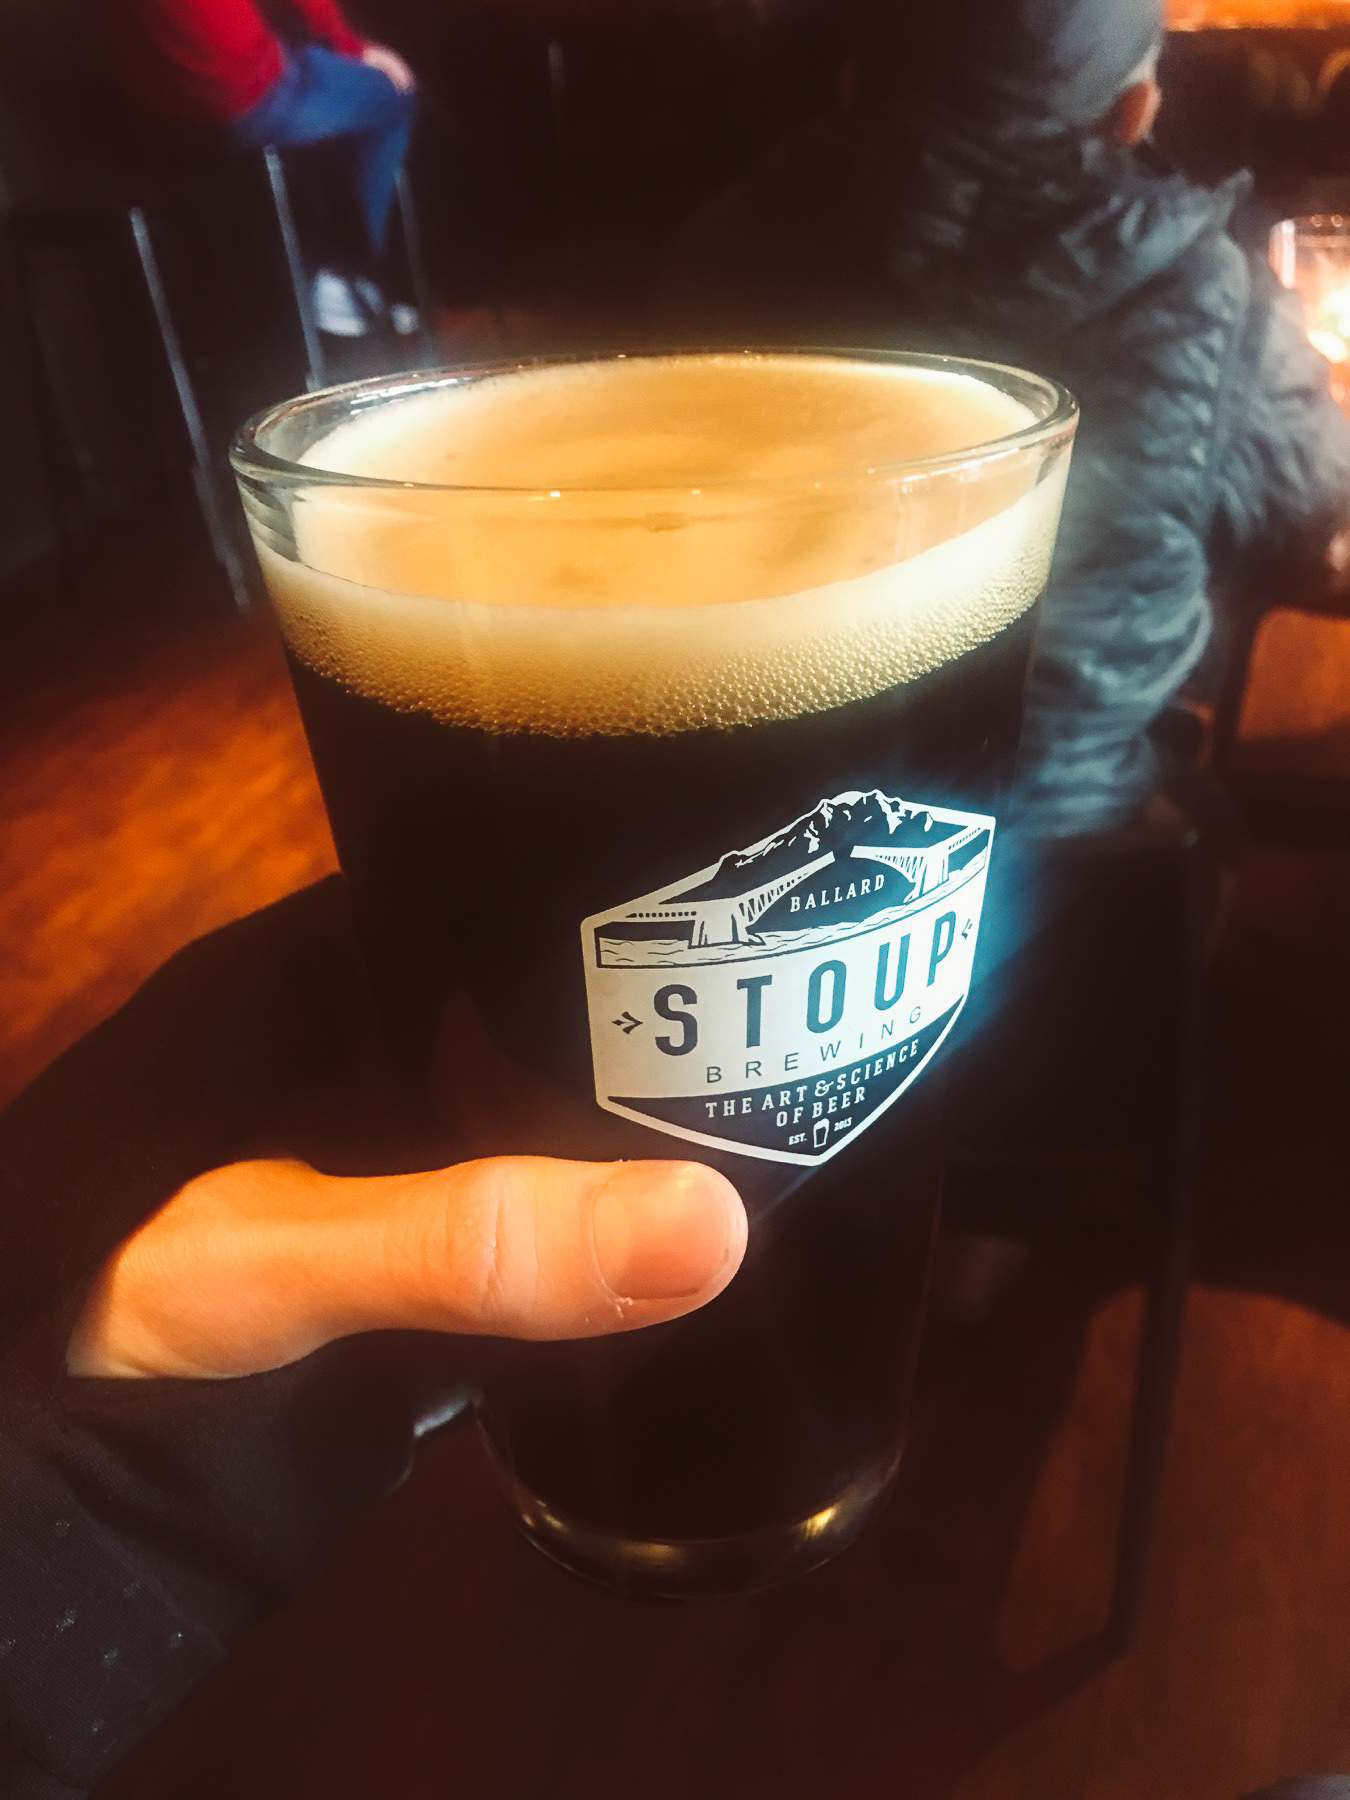 The Stoup Robust Porter we rewarded our weary bodies with.